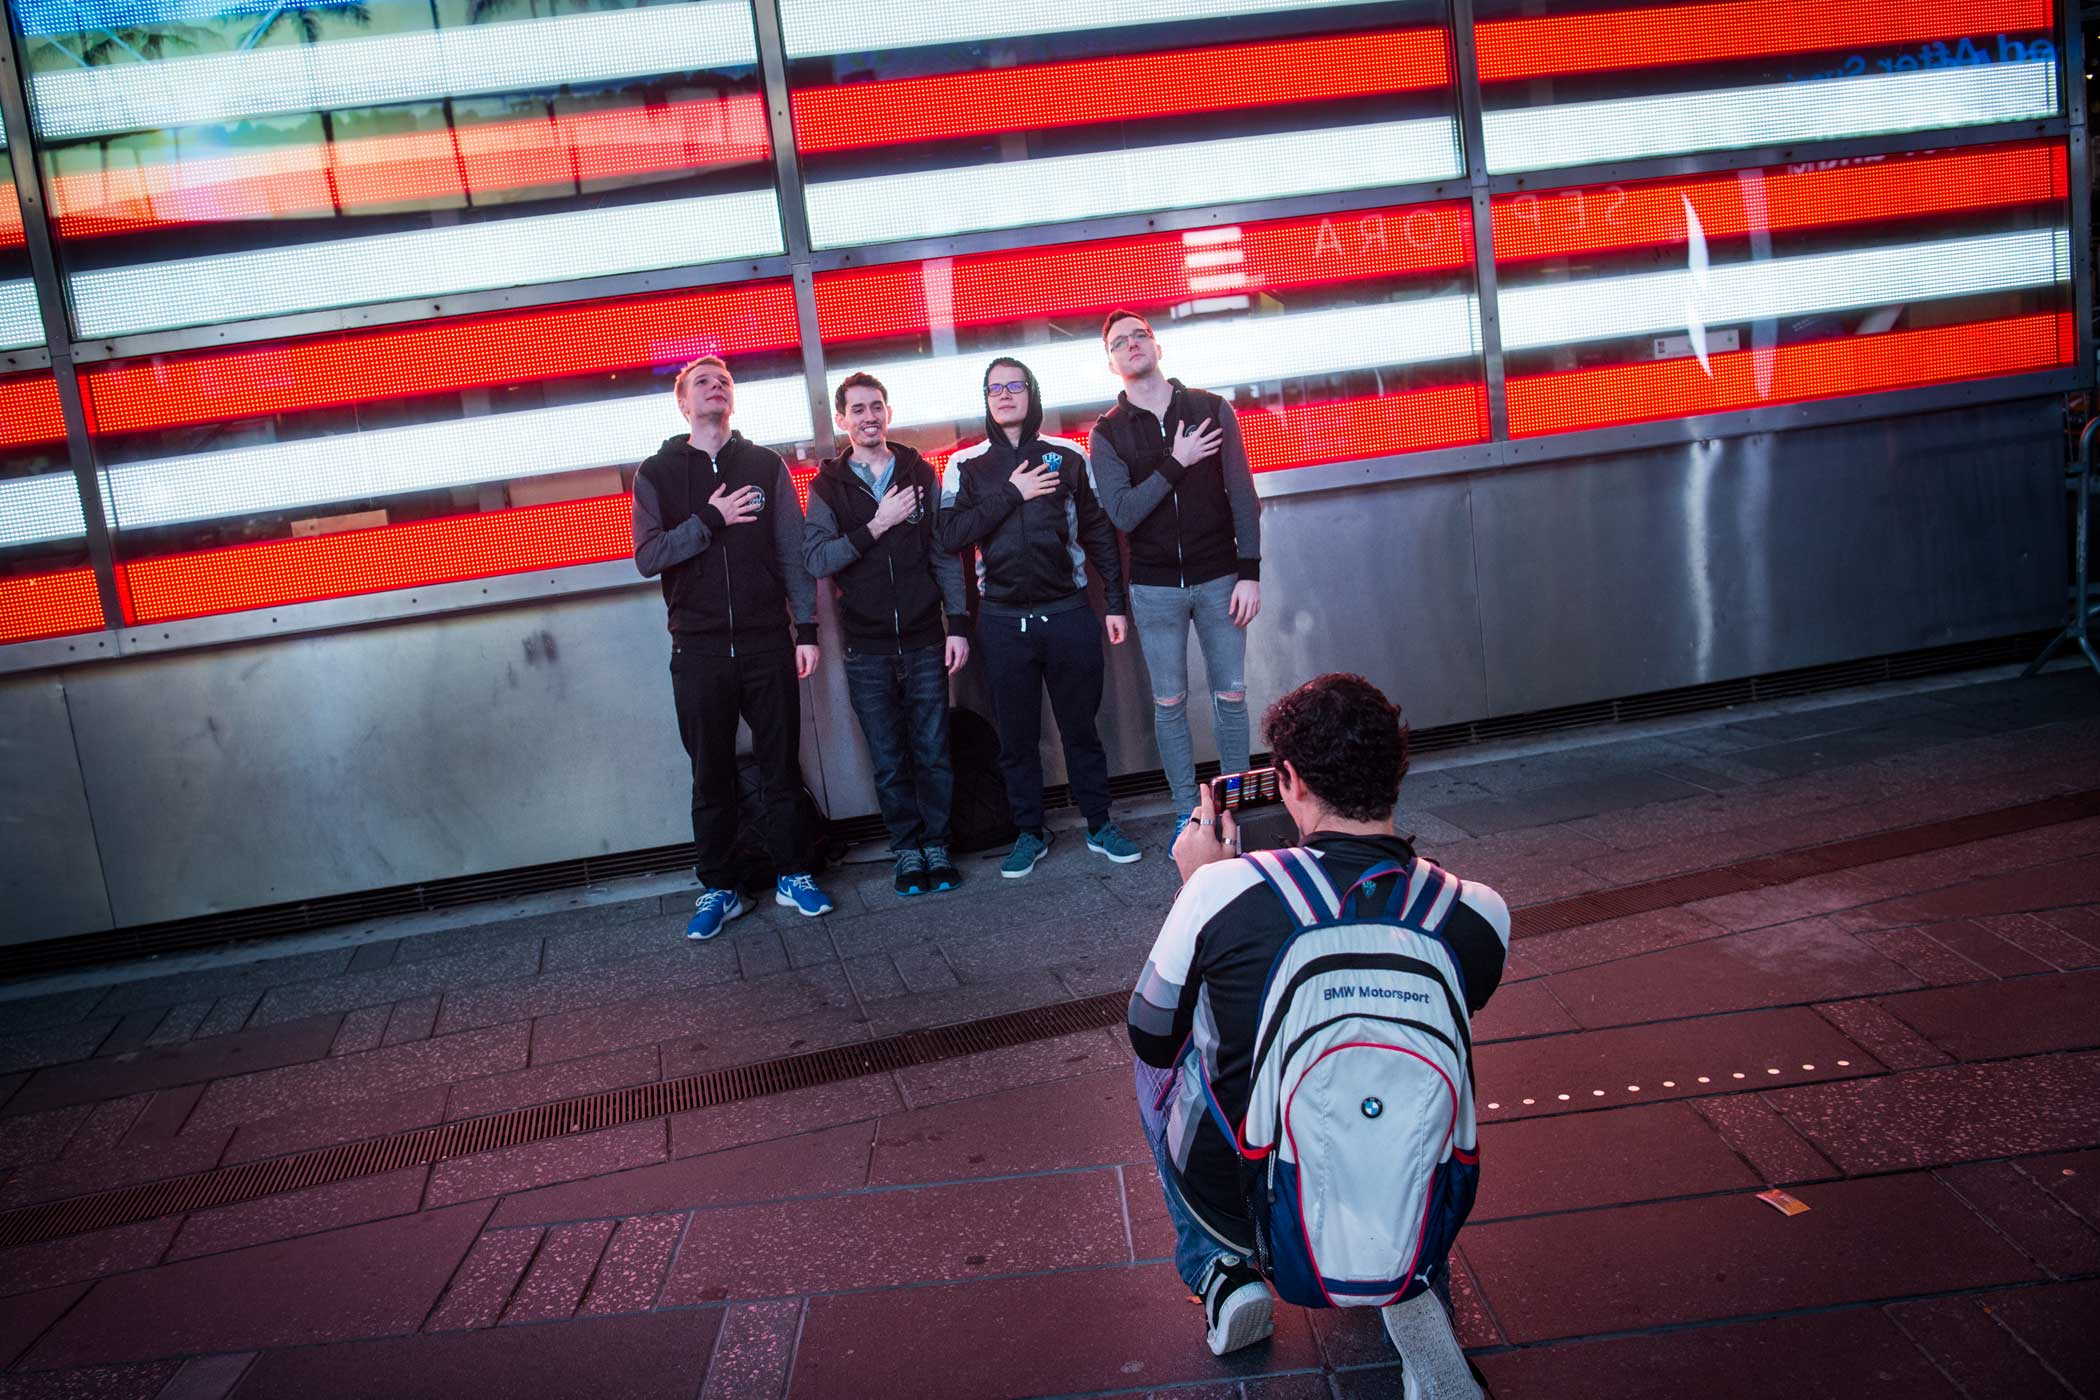 Members of H2k stand for a photo as they walk through Times Square at 2AM the day of their semifinal matchup with Samsung Galaxy for a chance to play in the League of Legends World Championship Finals.